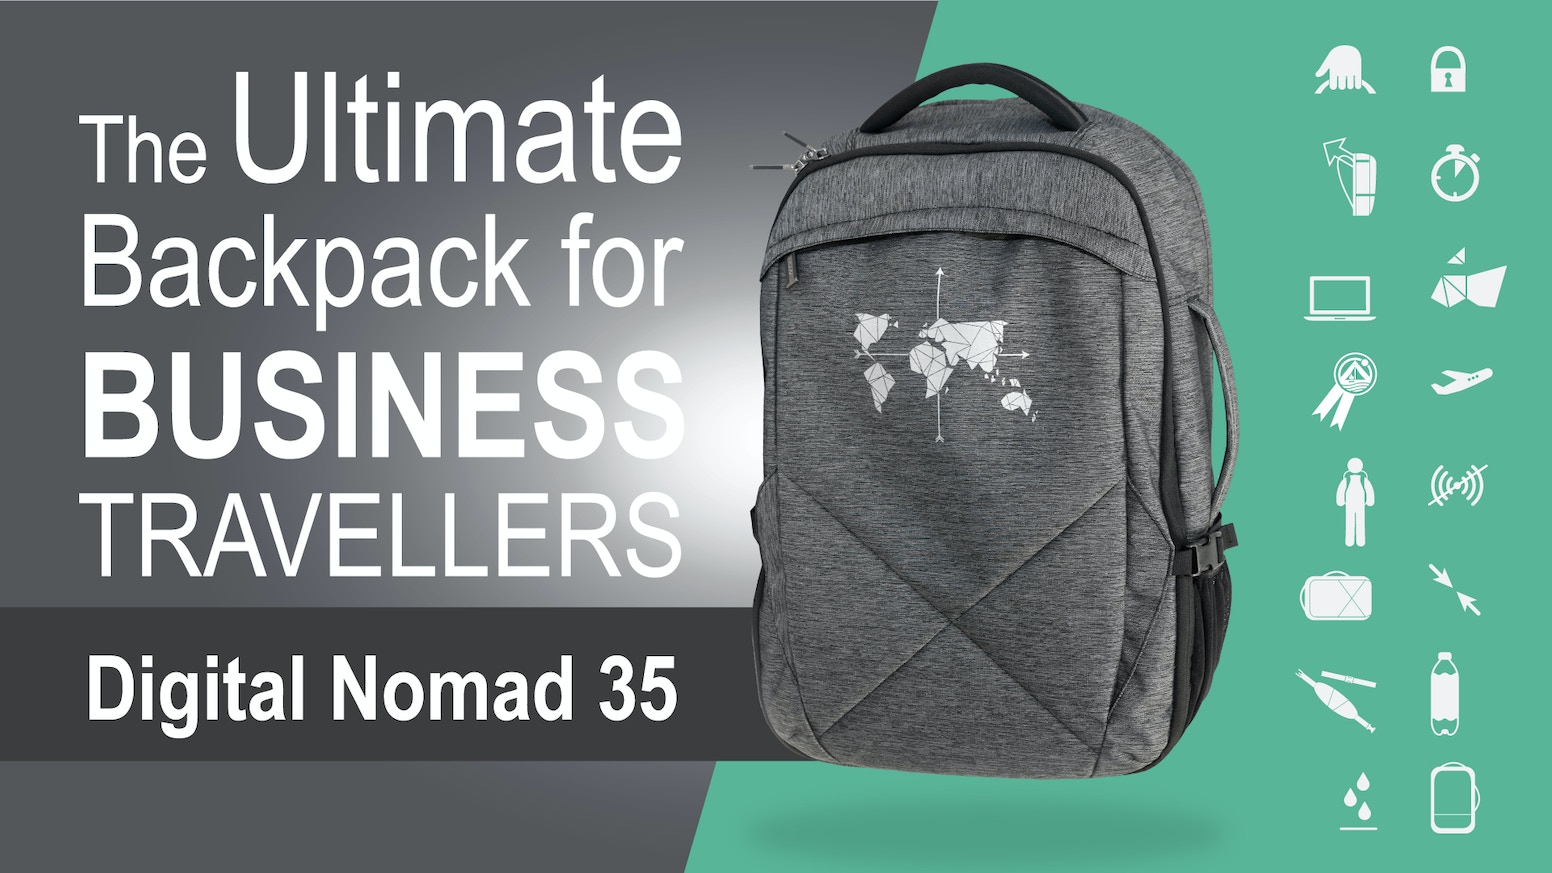 Digital Nomad 35 - The Ultimate Backpack for Business Travellers combines fast access, security, functionality, organisation & comfort.